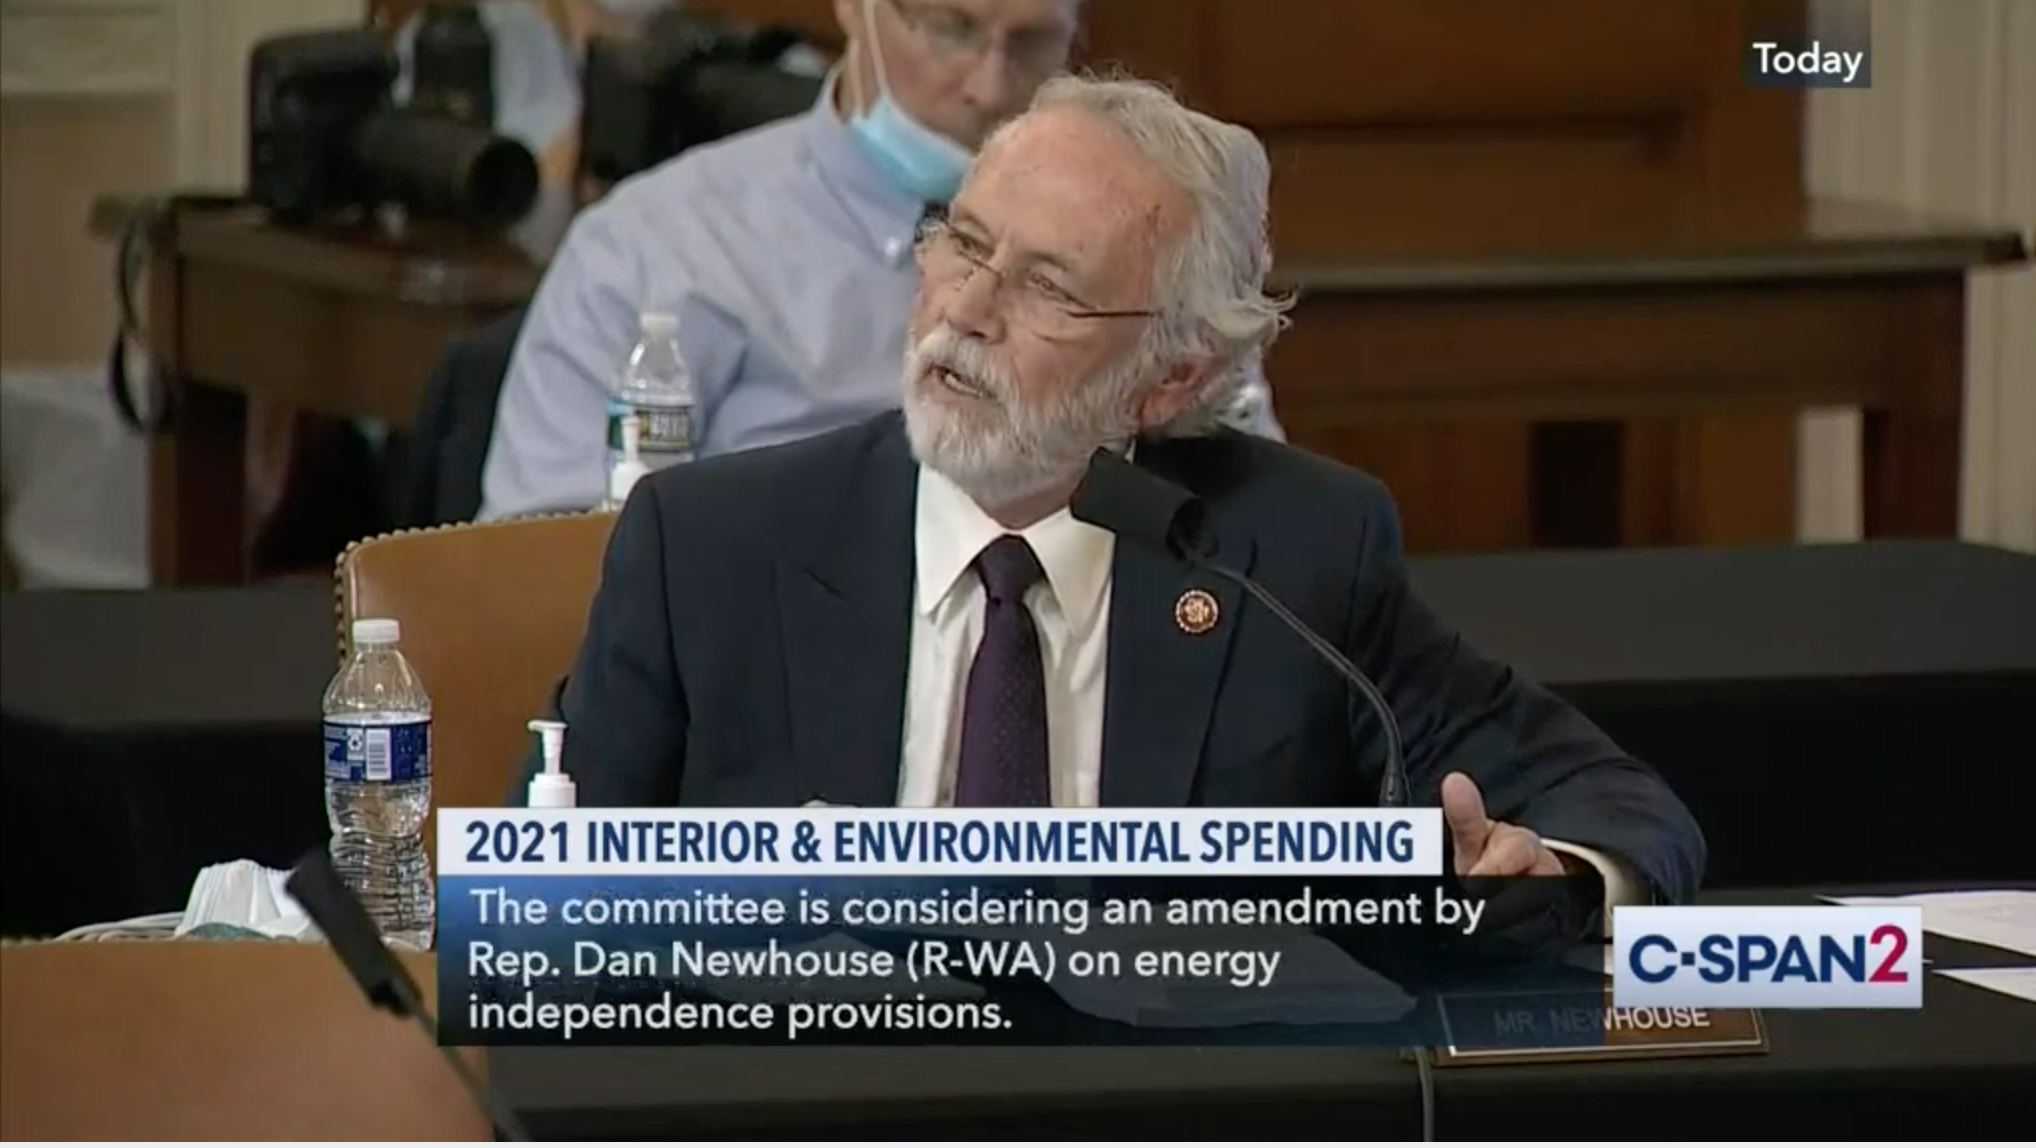 Bill to hobble development of ANWR and Tongass advances in US House - Alaska Public Media